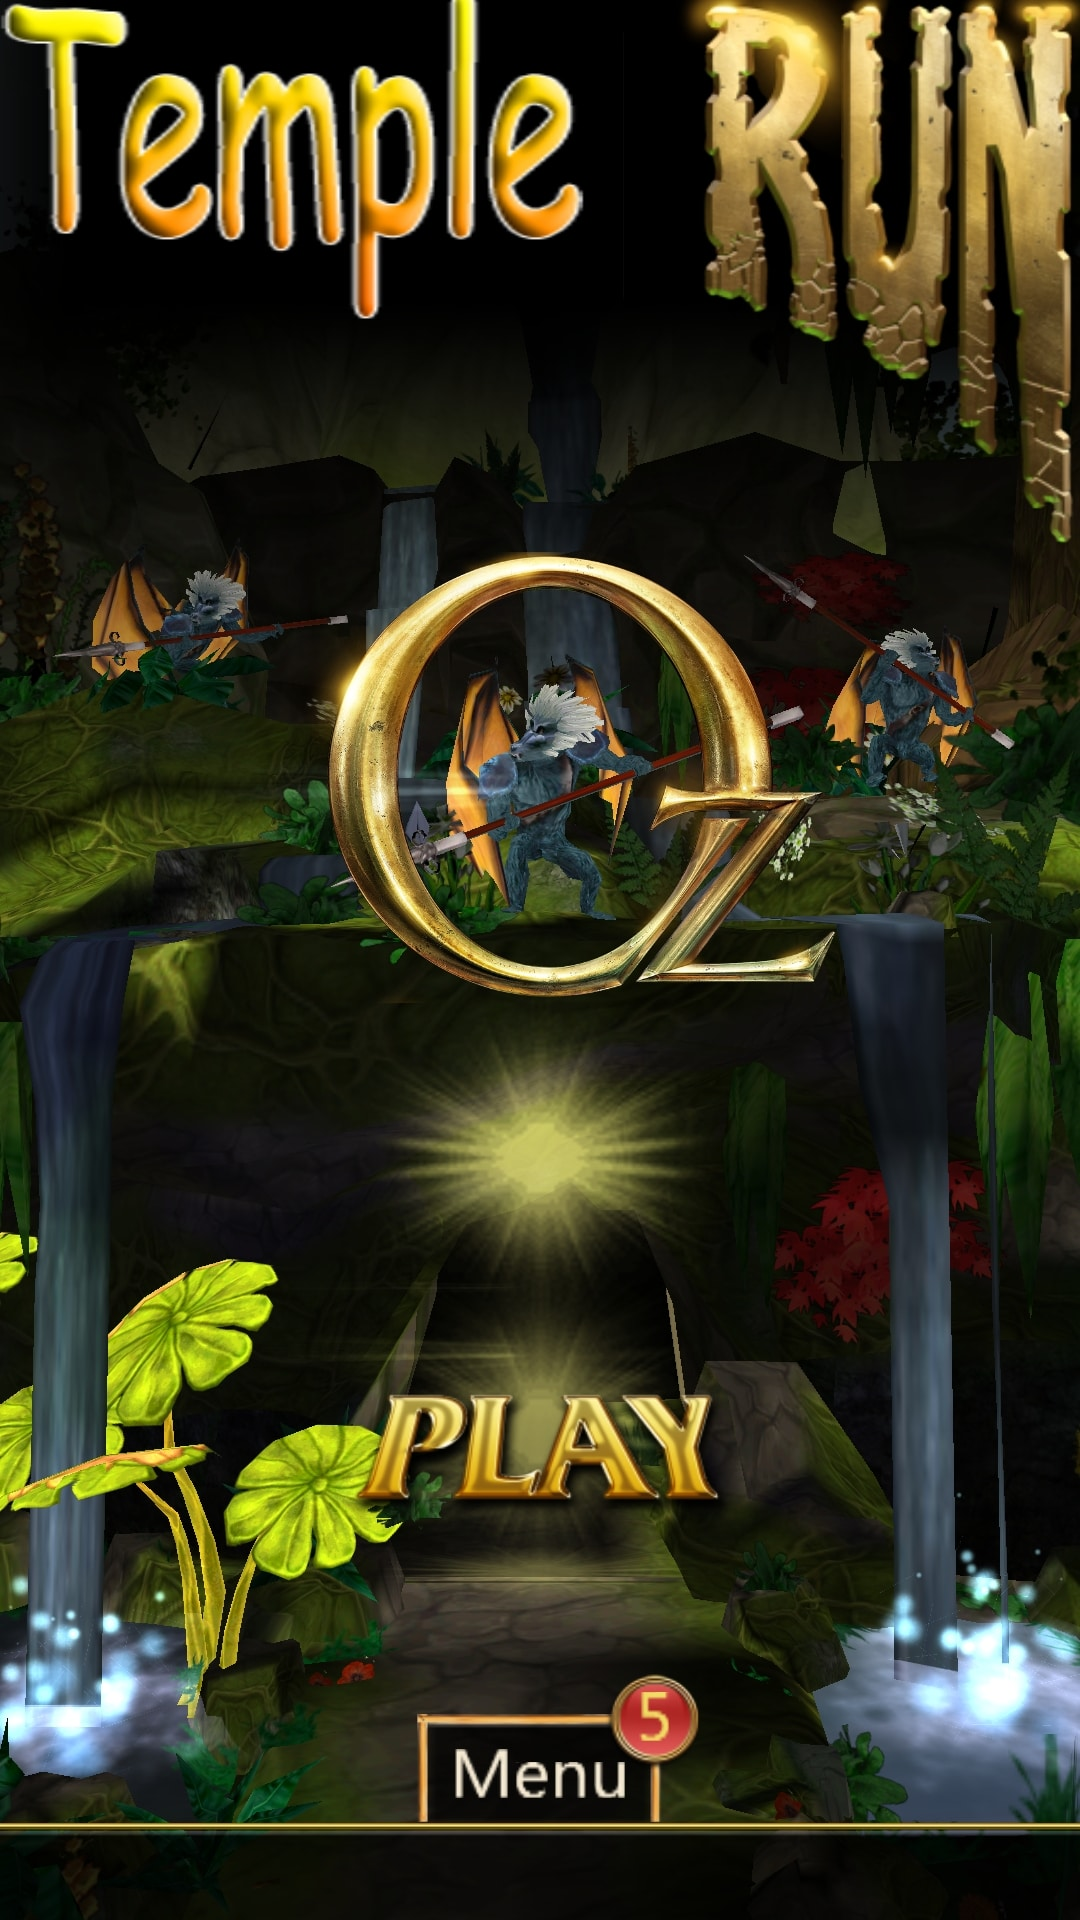 Download Endless Run Lost Oz APK - For Android 17